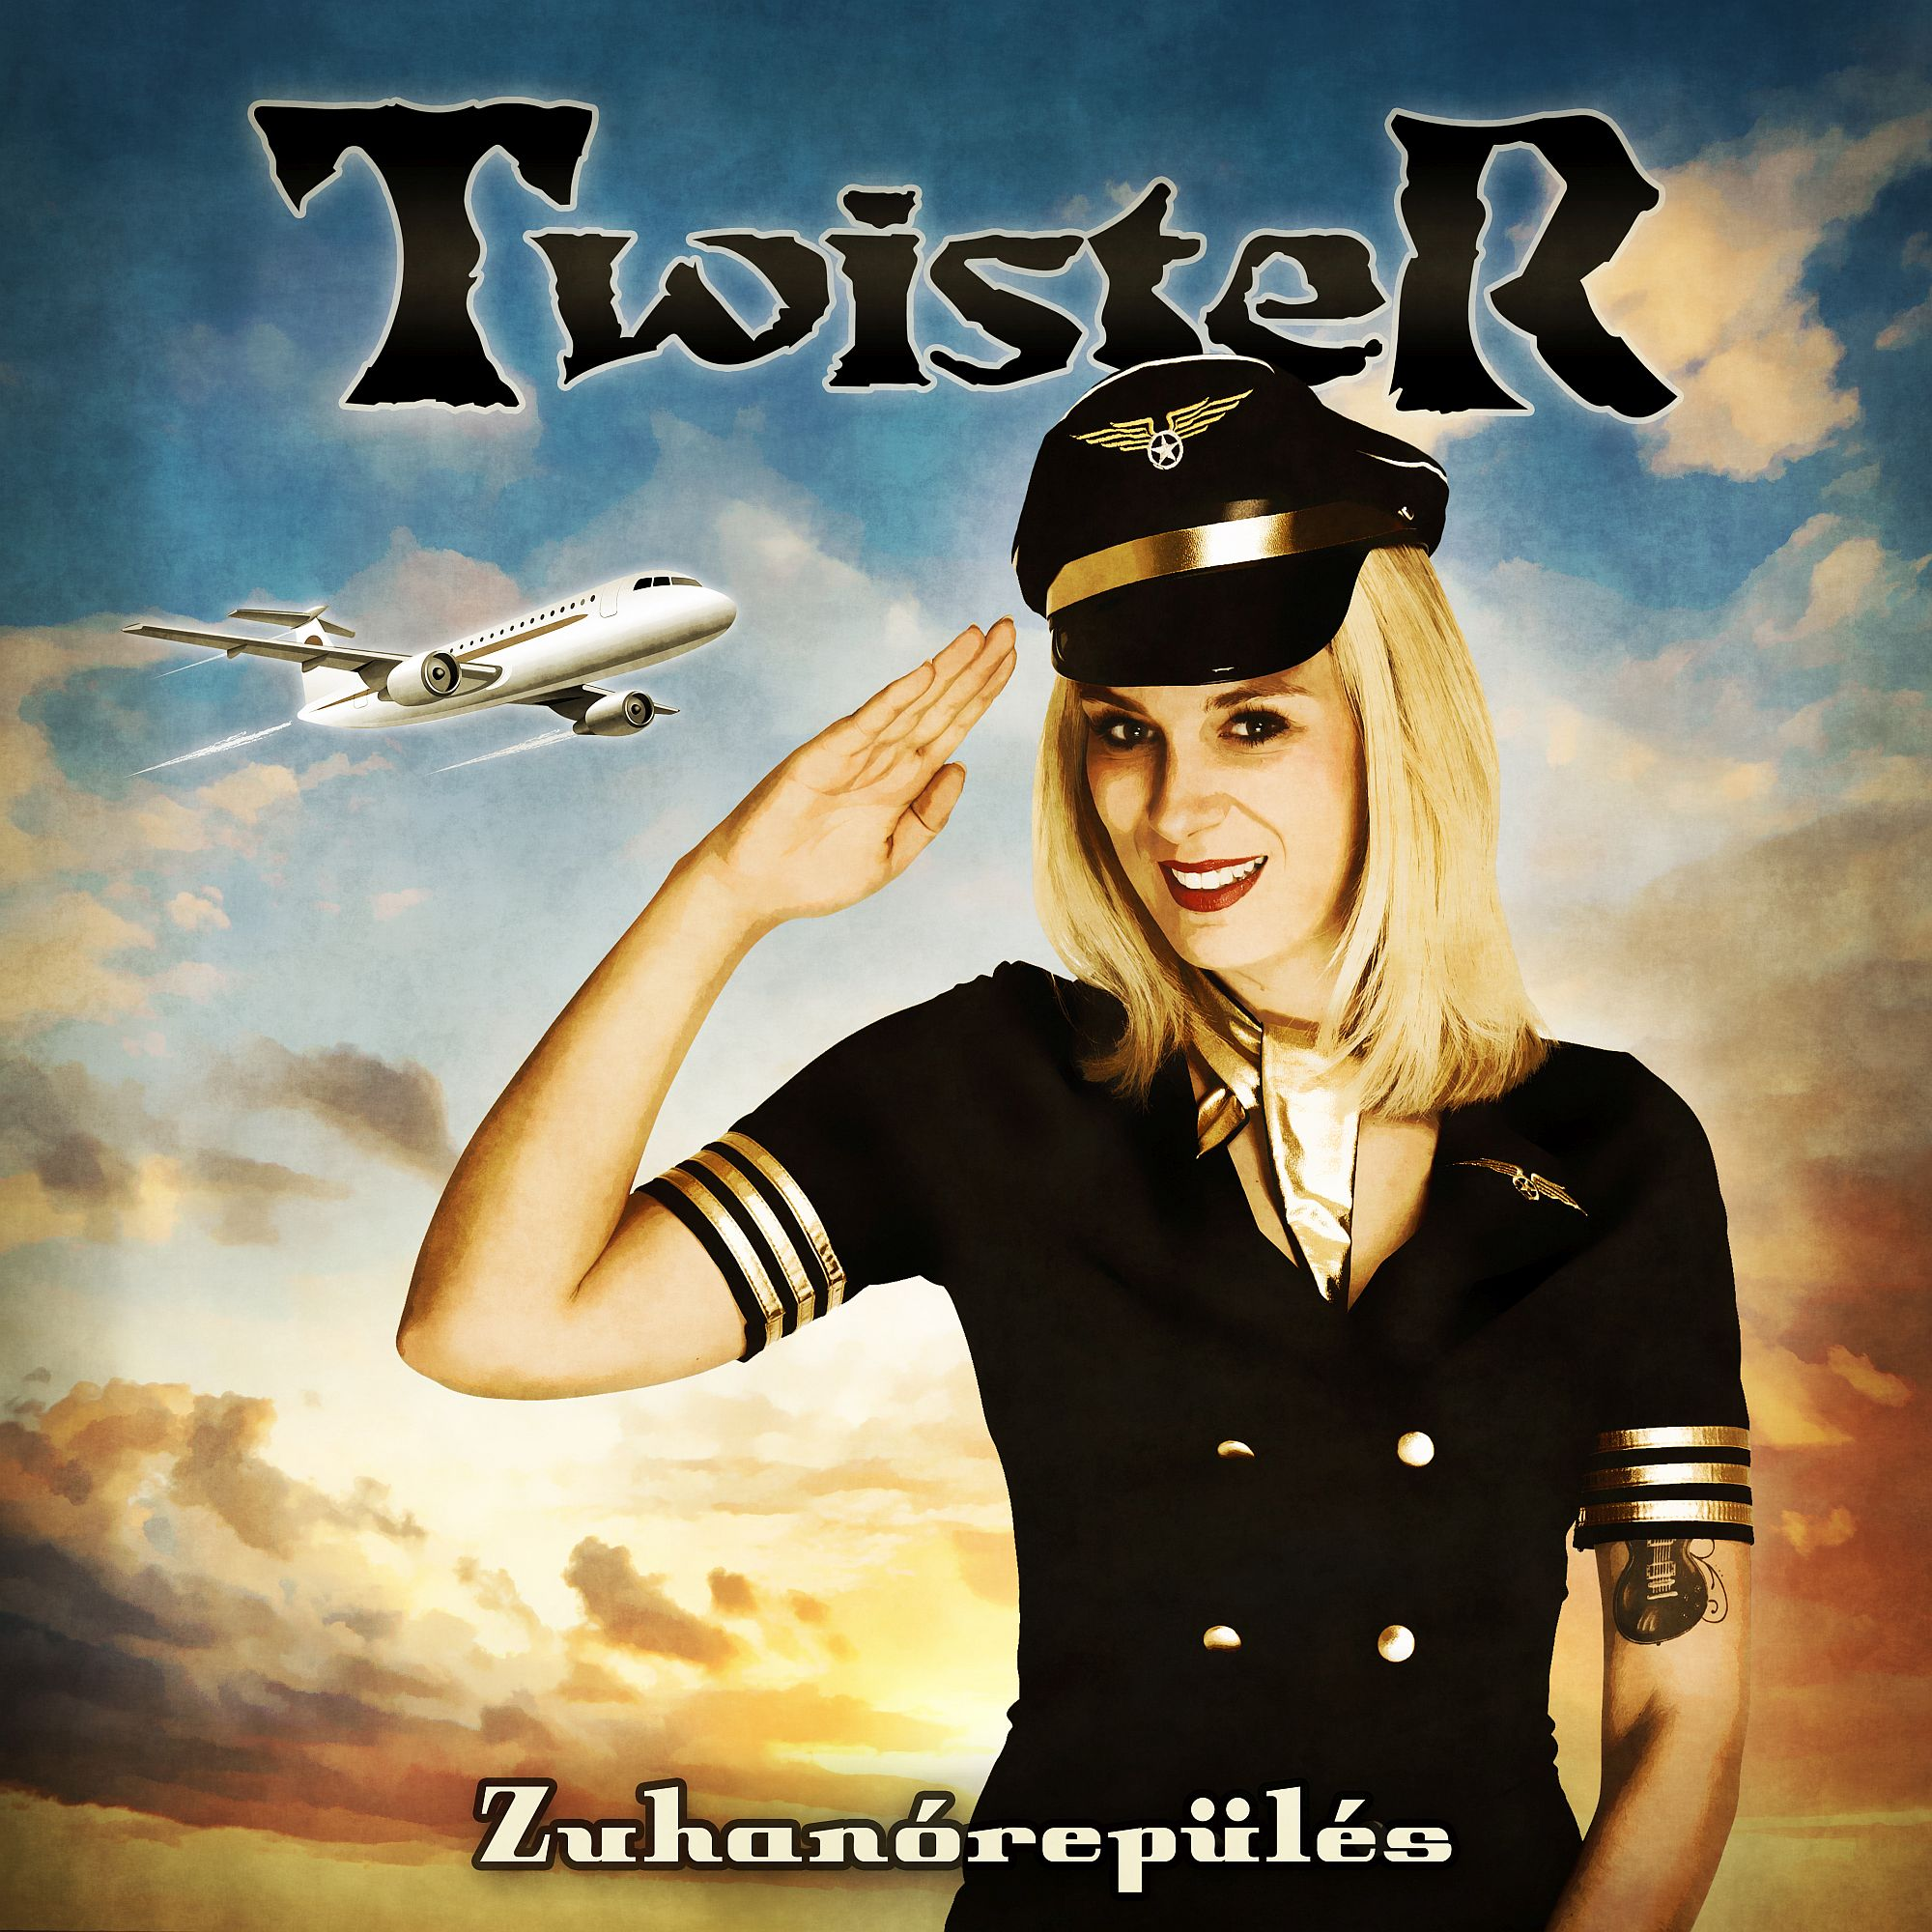 twister_zuhanorepules_cover_2000.jpg